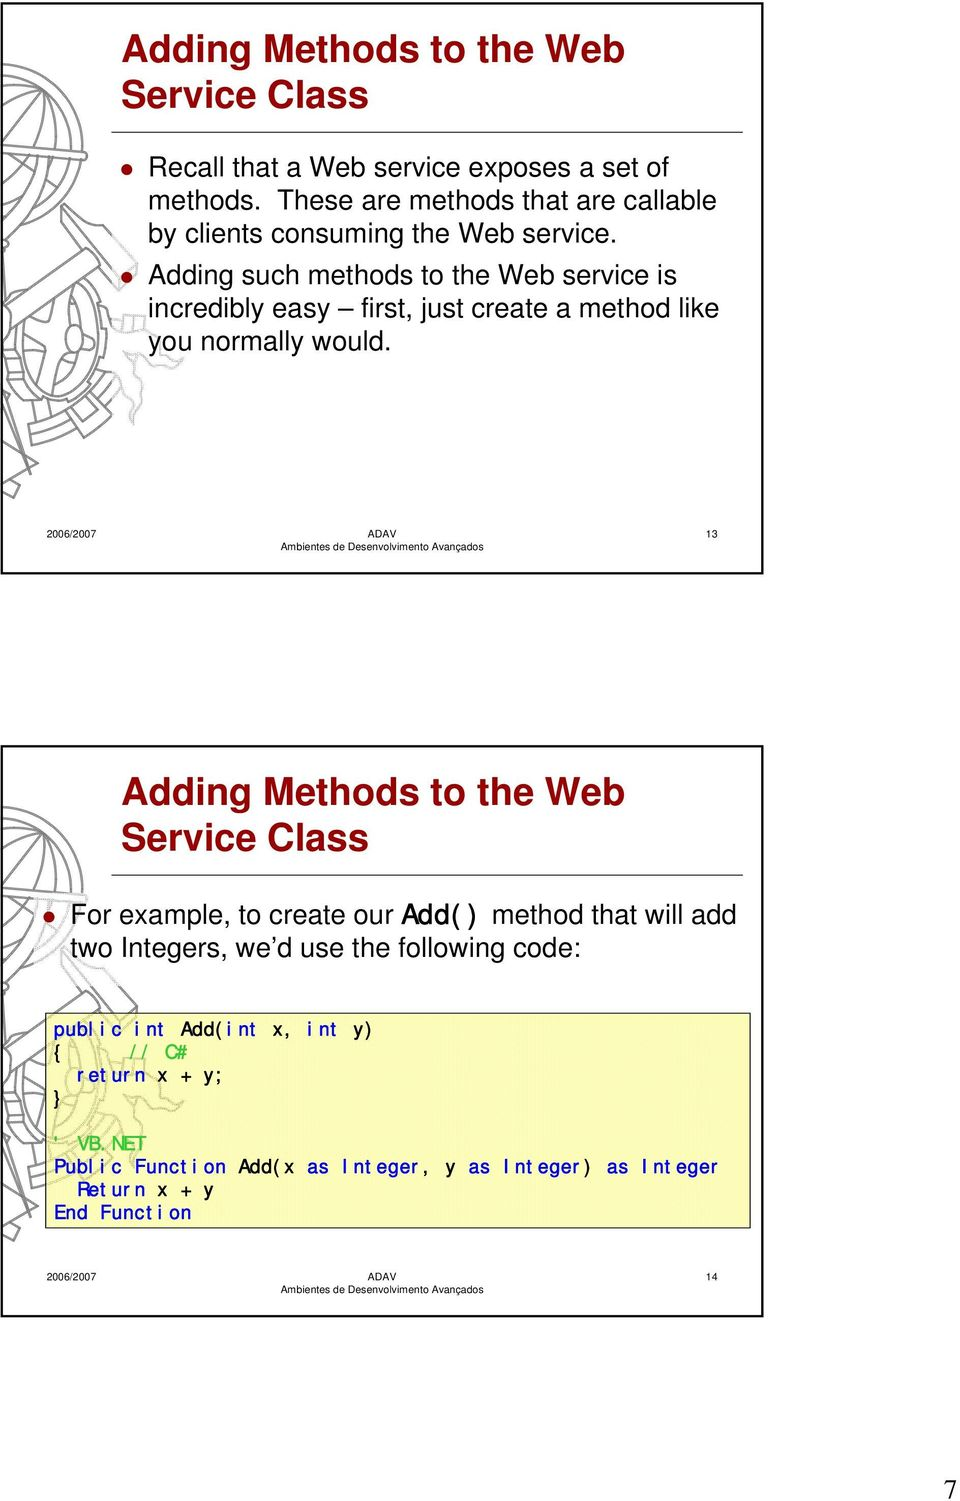 Adding such methods to the Web service is incredibly easy first, just create a method like you normally would.